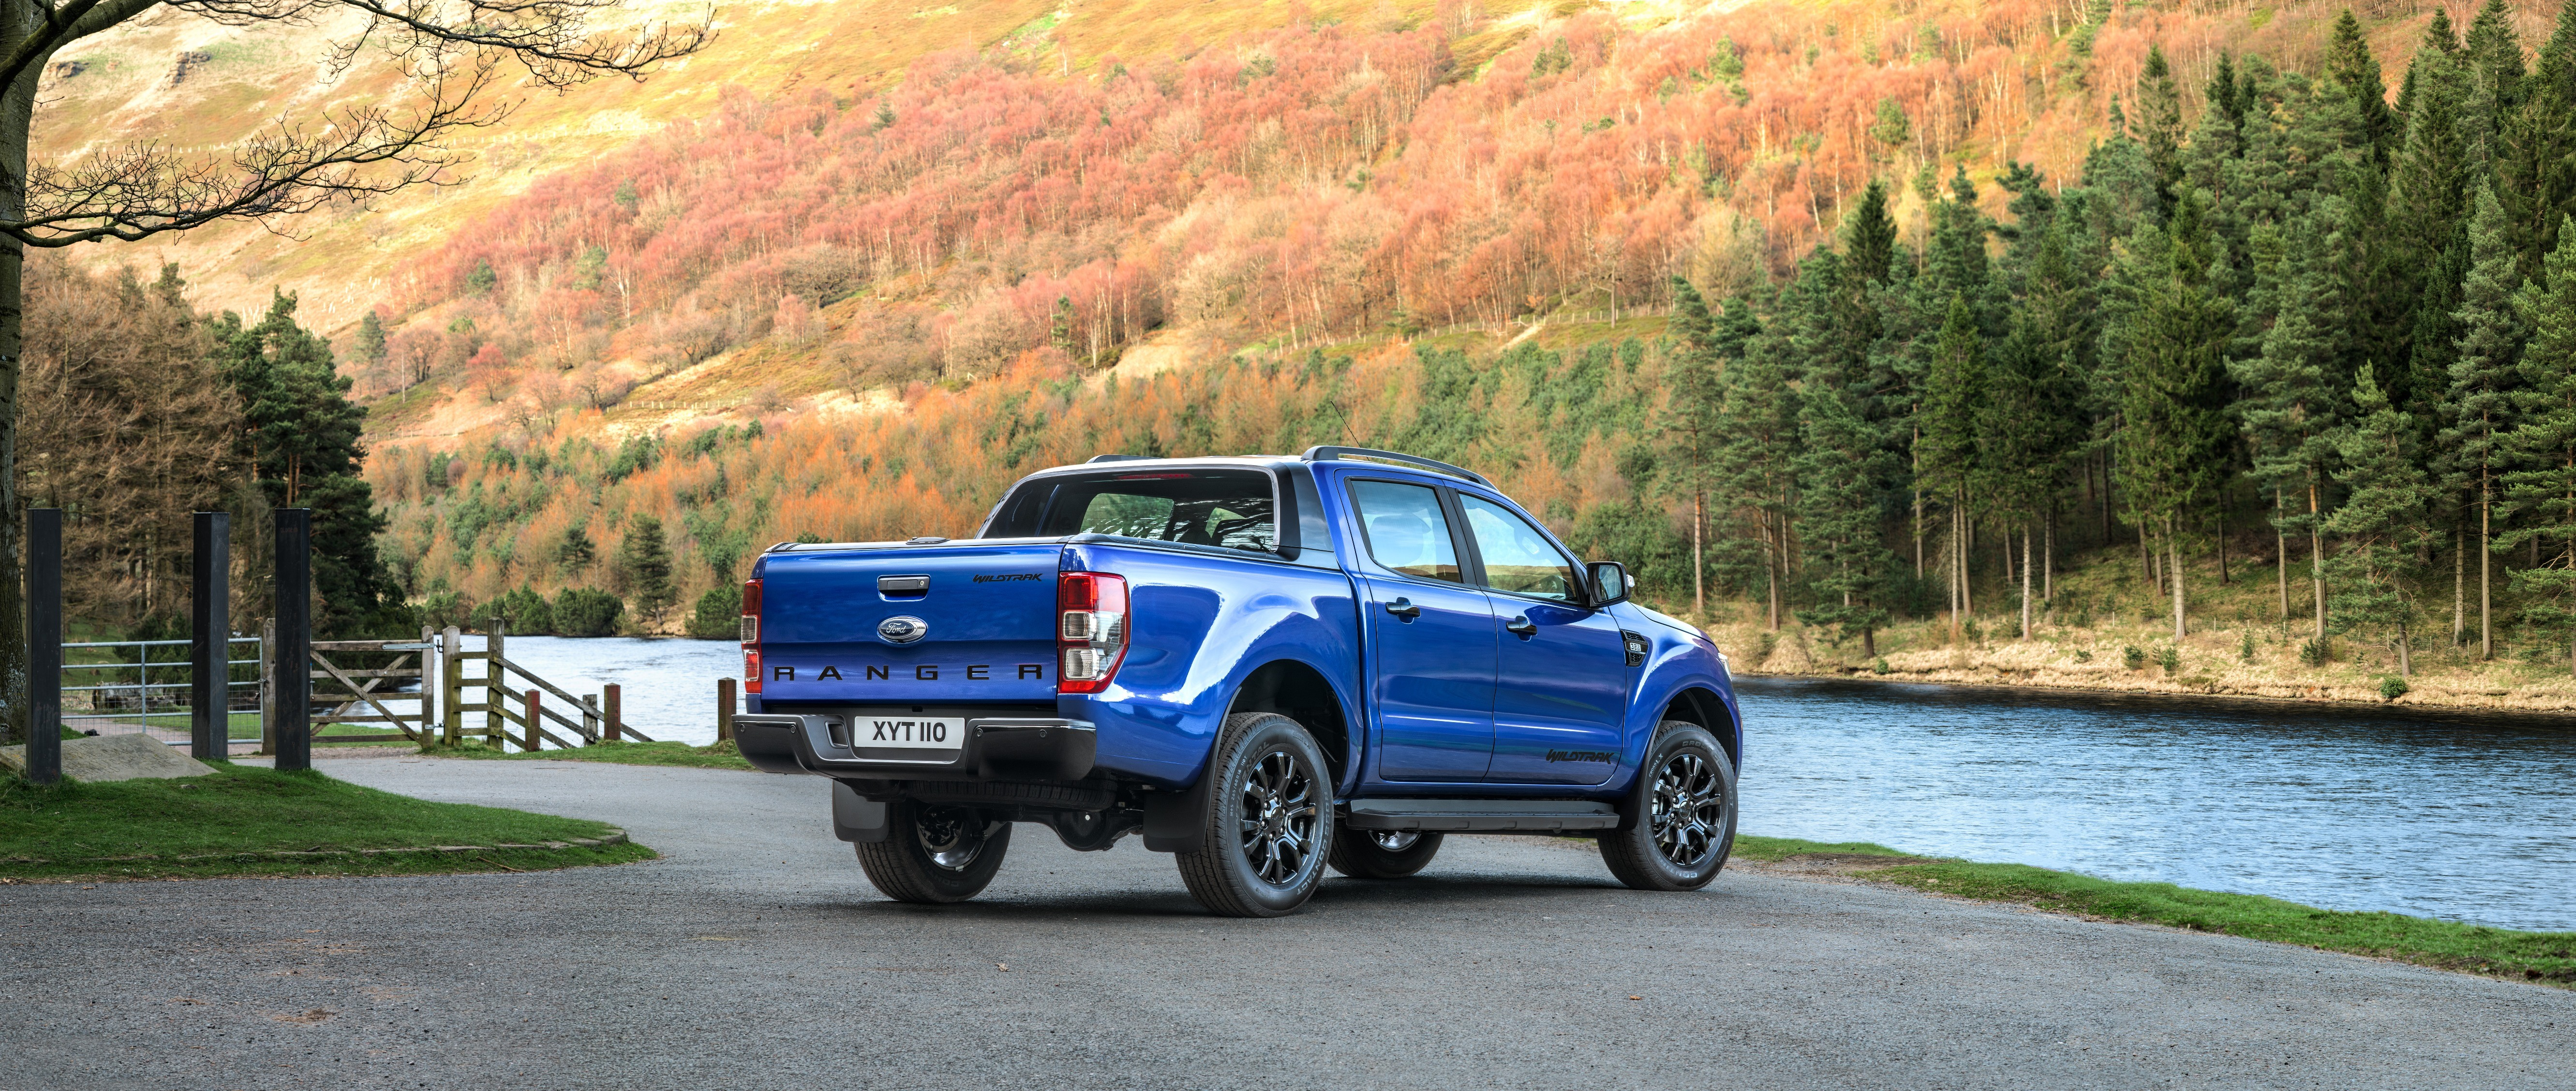 2018 Ford Ranger Wildtrak X is Dressed to Impress - autoevolution